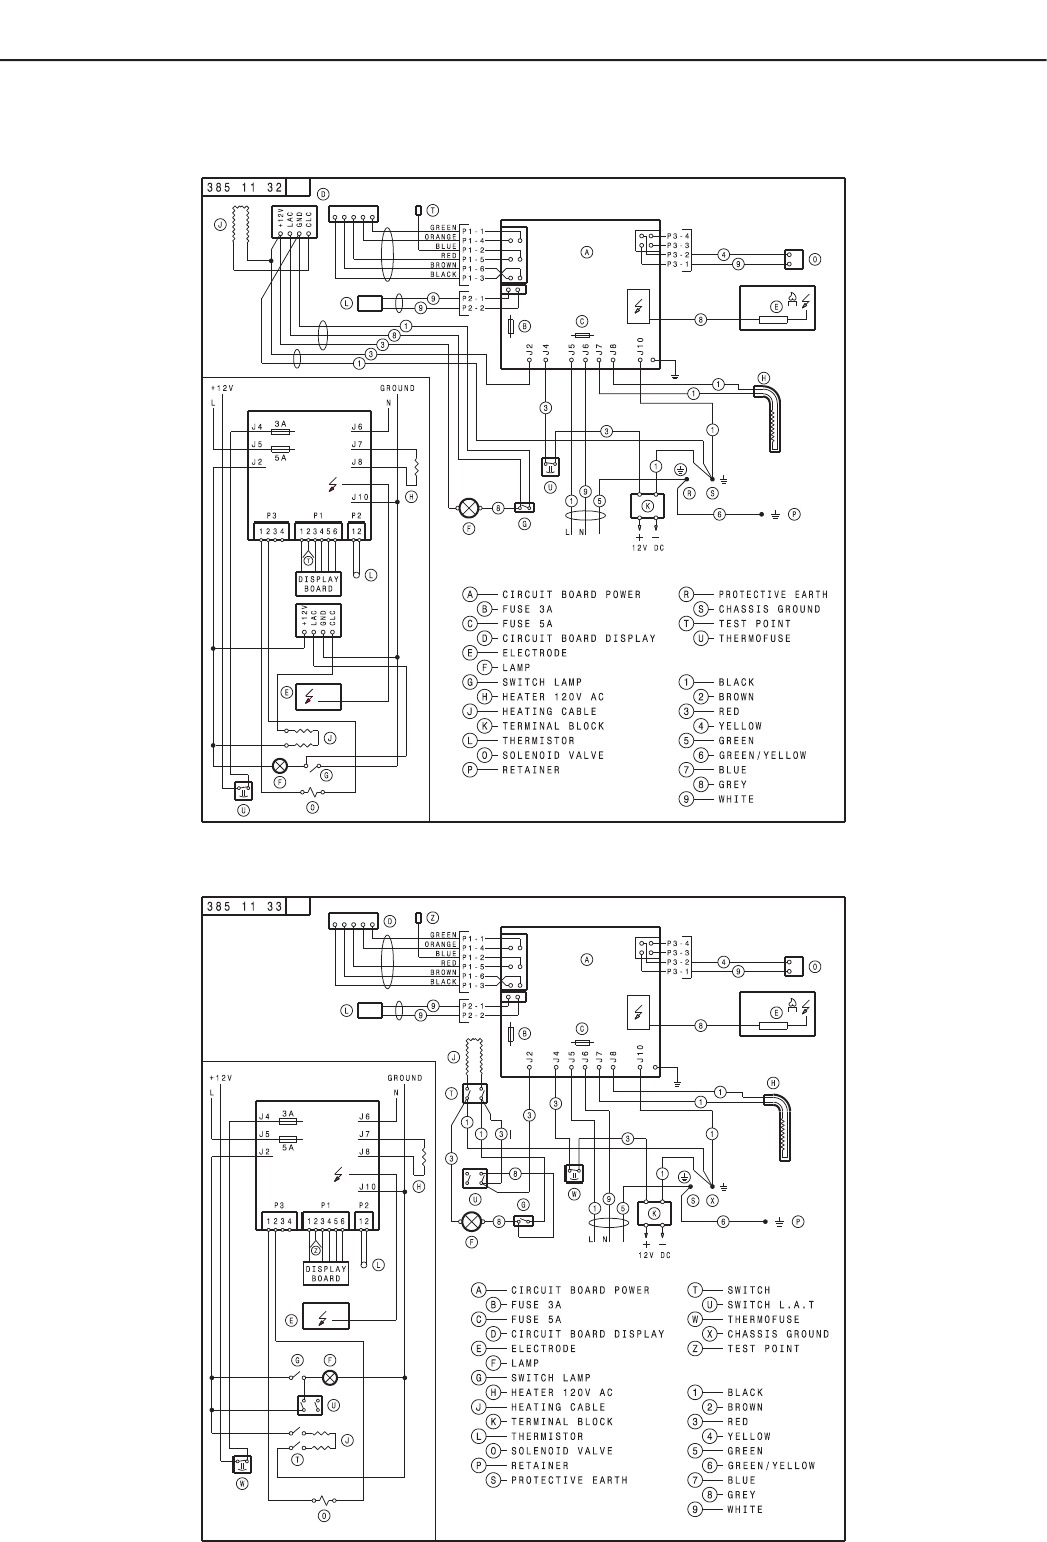 Wiring Diagrams Dometic Refrigerator Parts Dometic Rv furthermore Maxresdefault besides Ae Dometic Weatherpro Awning Hardware Standard together with Ge Diagram likewise Dometic Norcold Wiring. on dometic refrigerator wiring diagram